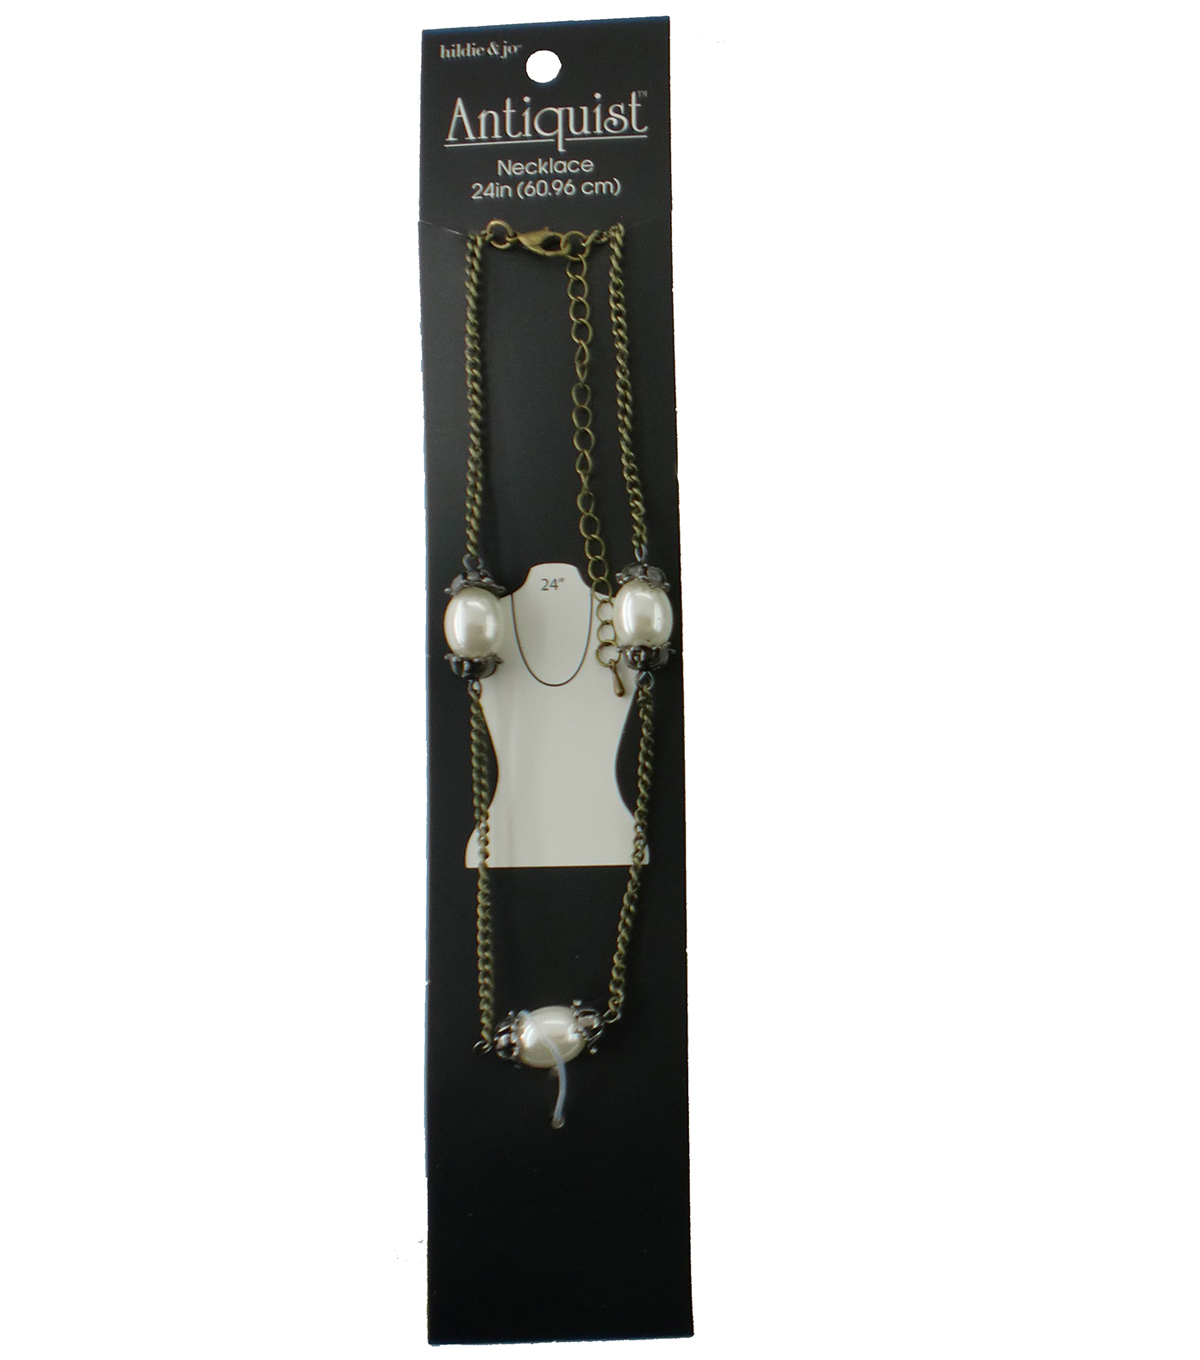 hildie & jo™ Antiquist 24\u0027\u0027 Antique Gold Necklace-Pearls